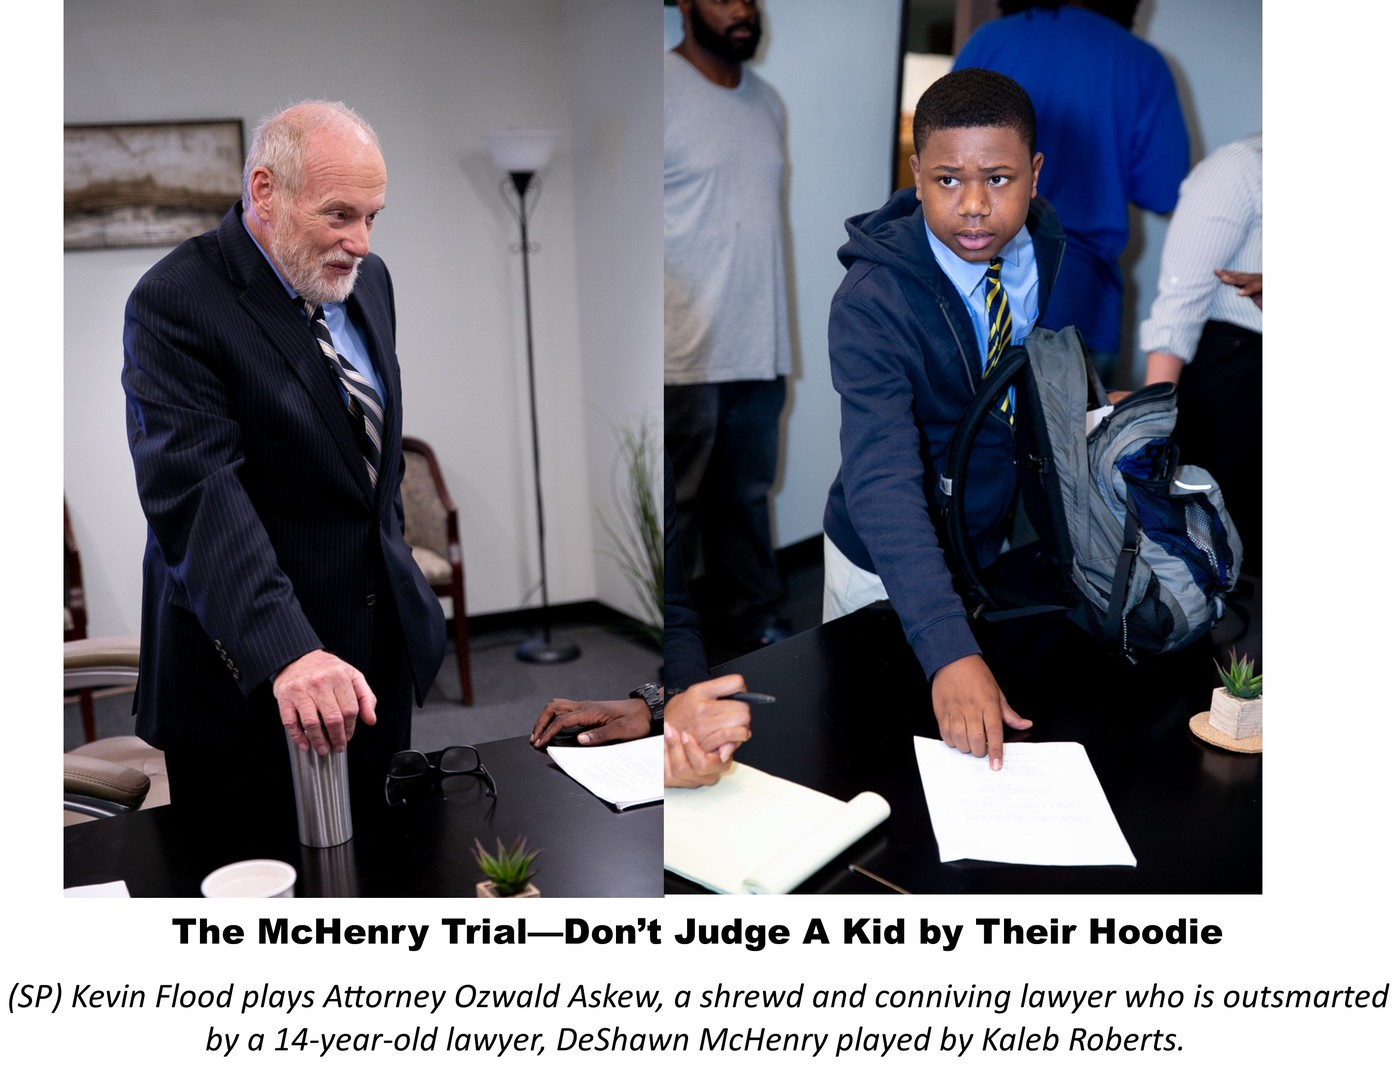 The-McHenry-Trial-–-Dont-Judge-a-Kid-by-Their-Hoodie-Pictures_McHenry_Trial_Askew_SP